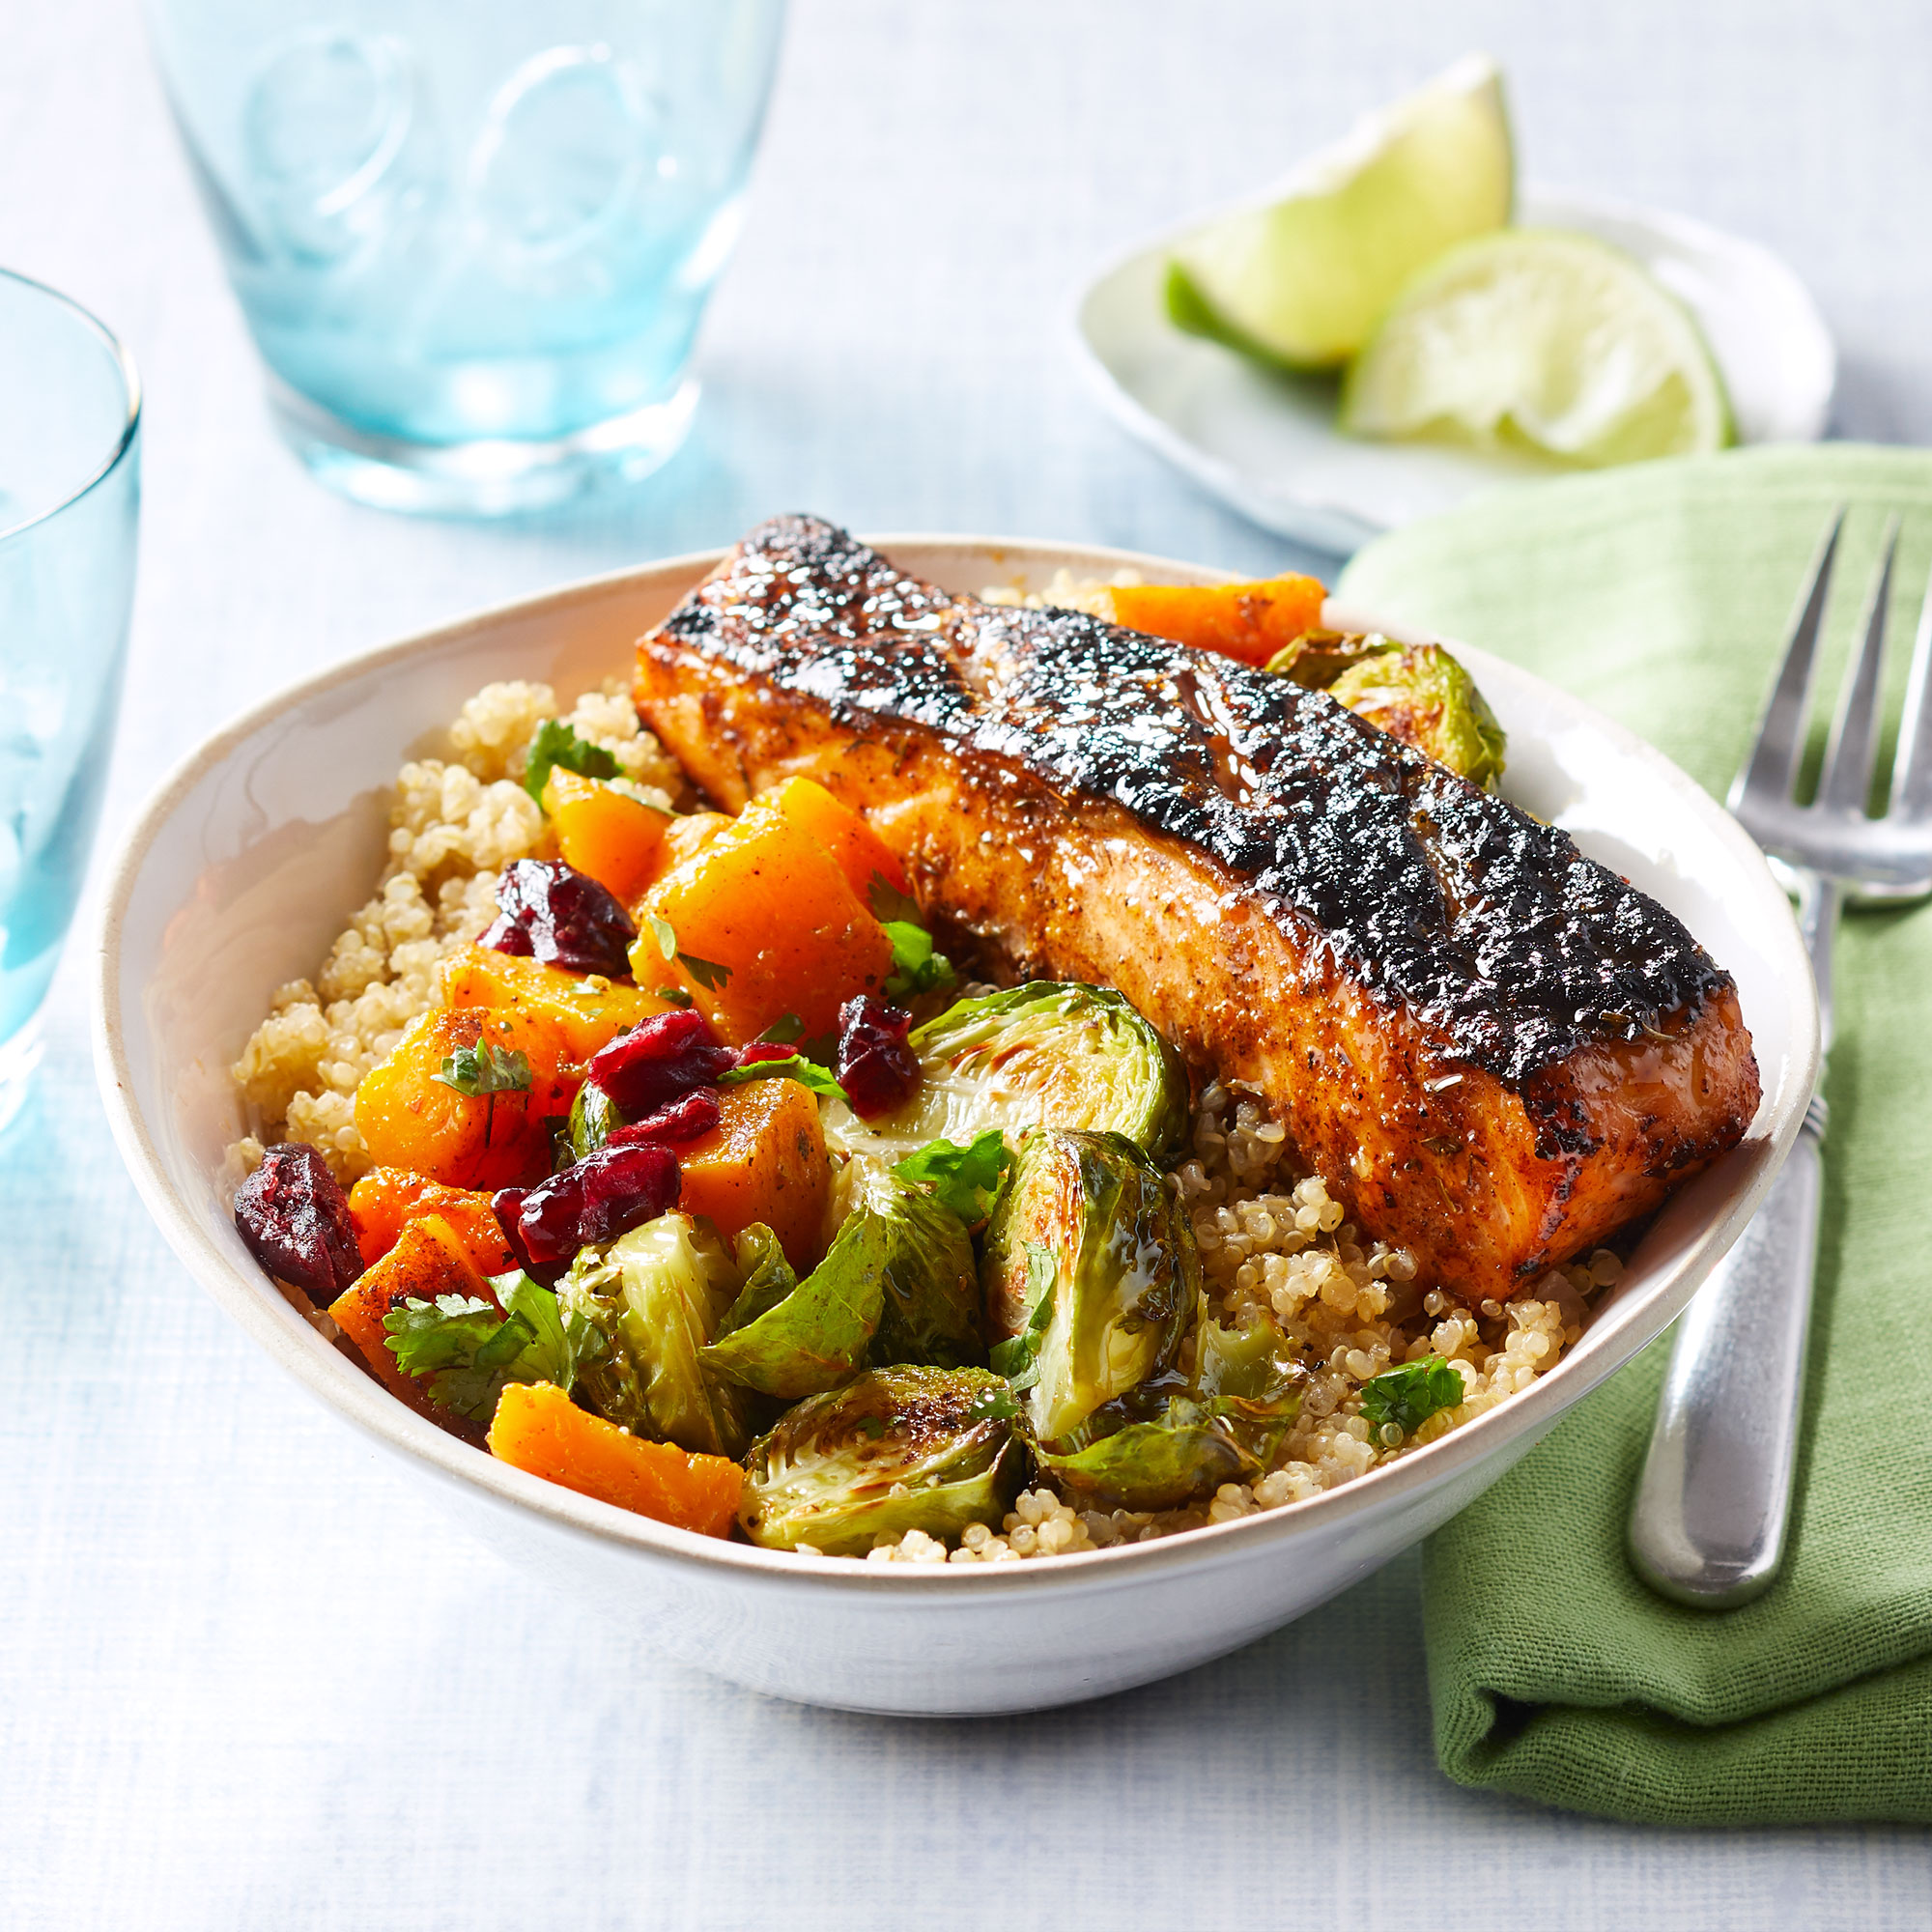 Jerk-Spiced Salmon & Quinoa Bowl with Mango Vinaigrette